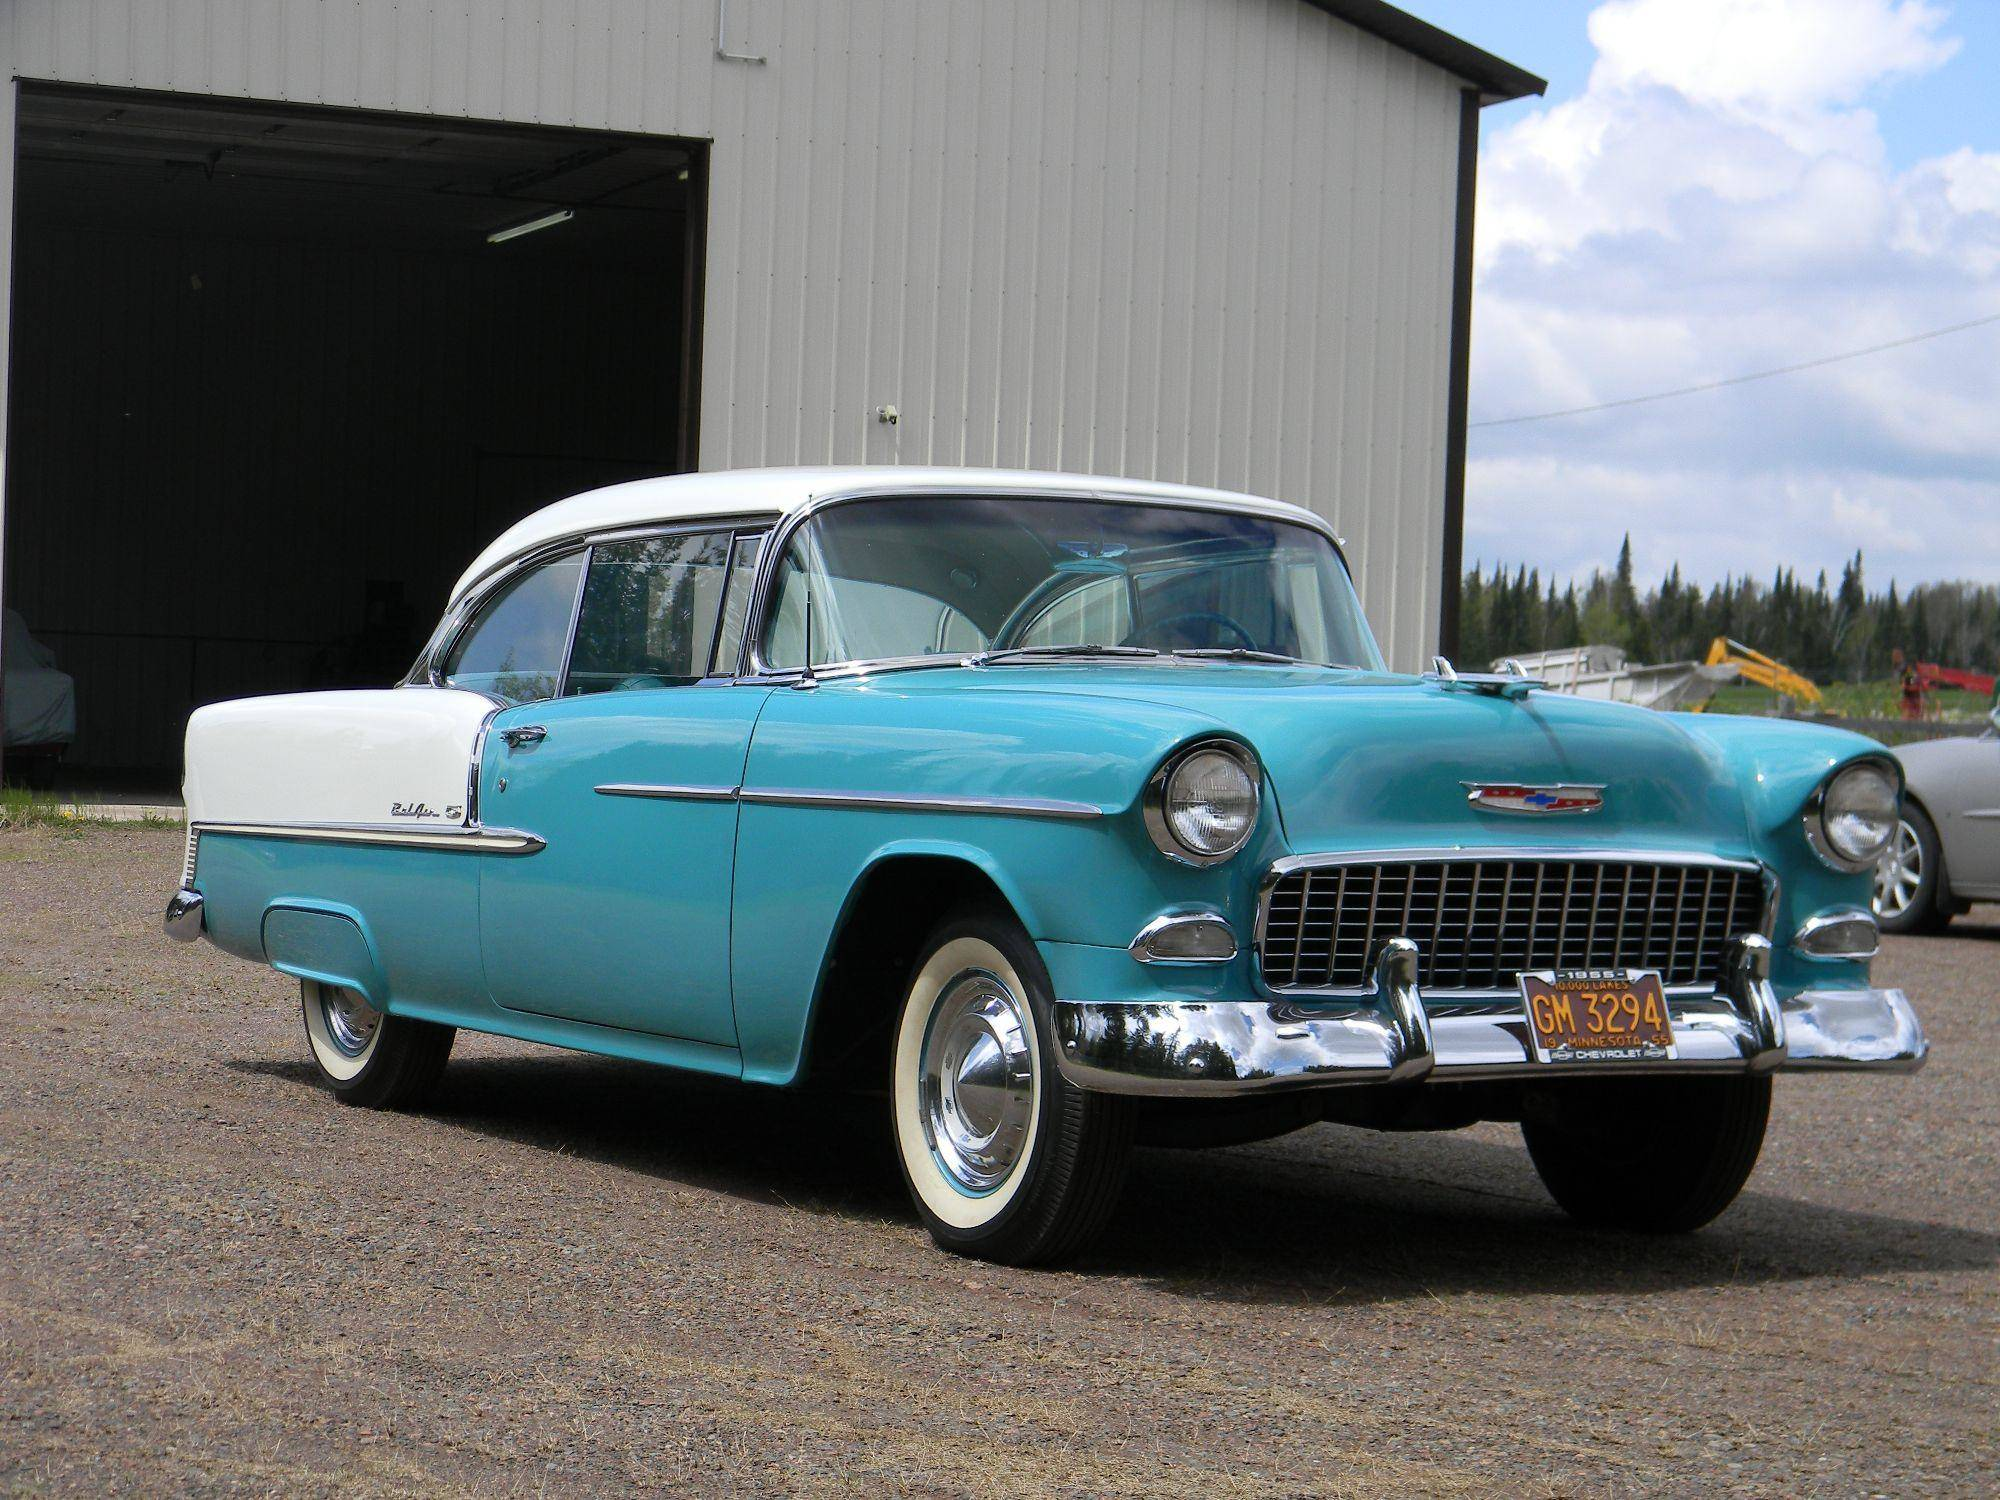 Is the 57\' Chevrolet Bel Air better than the 55\' and 56\'?